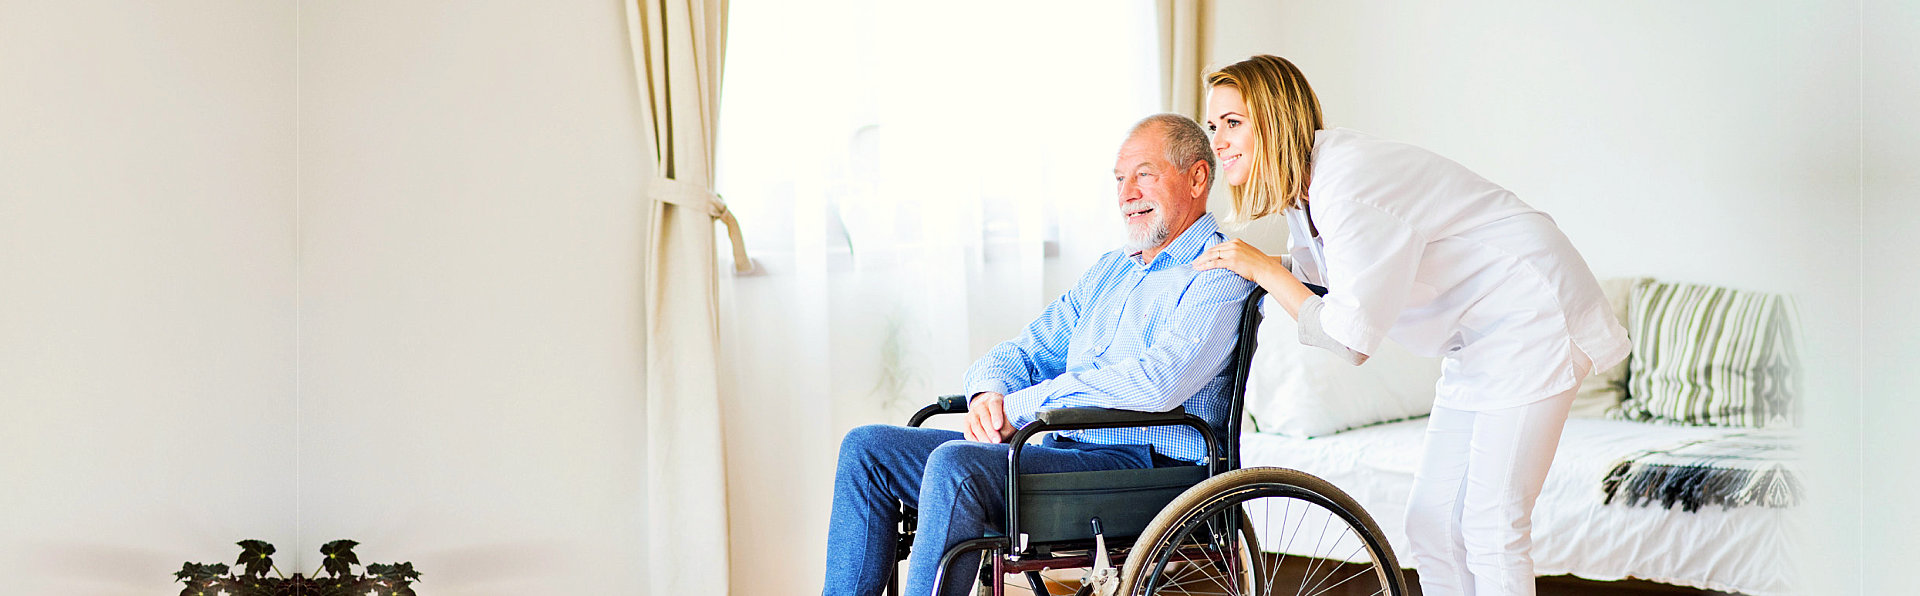 urse and senior man in wheelchair during home visit